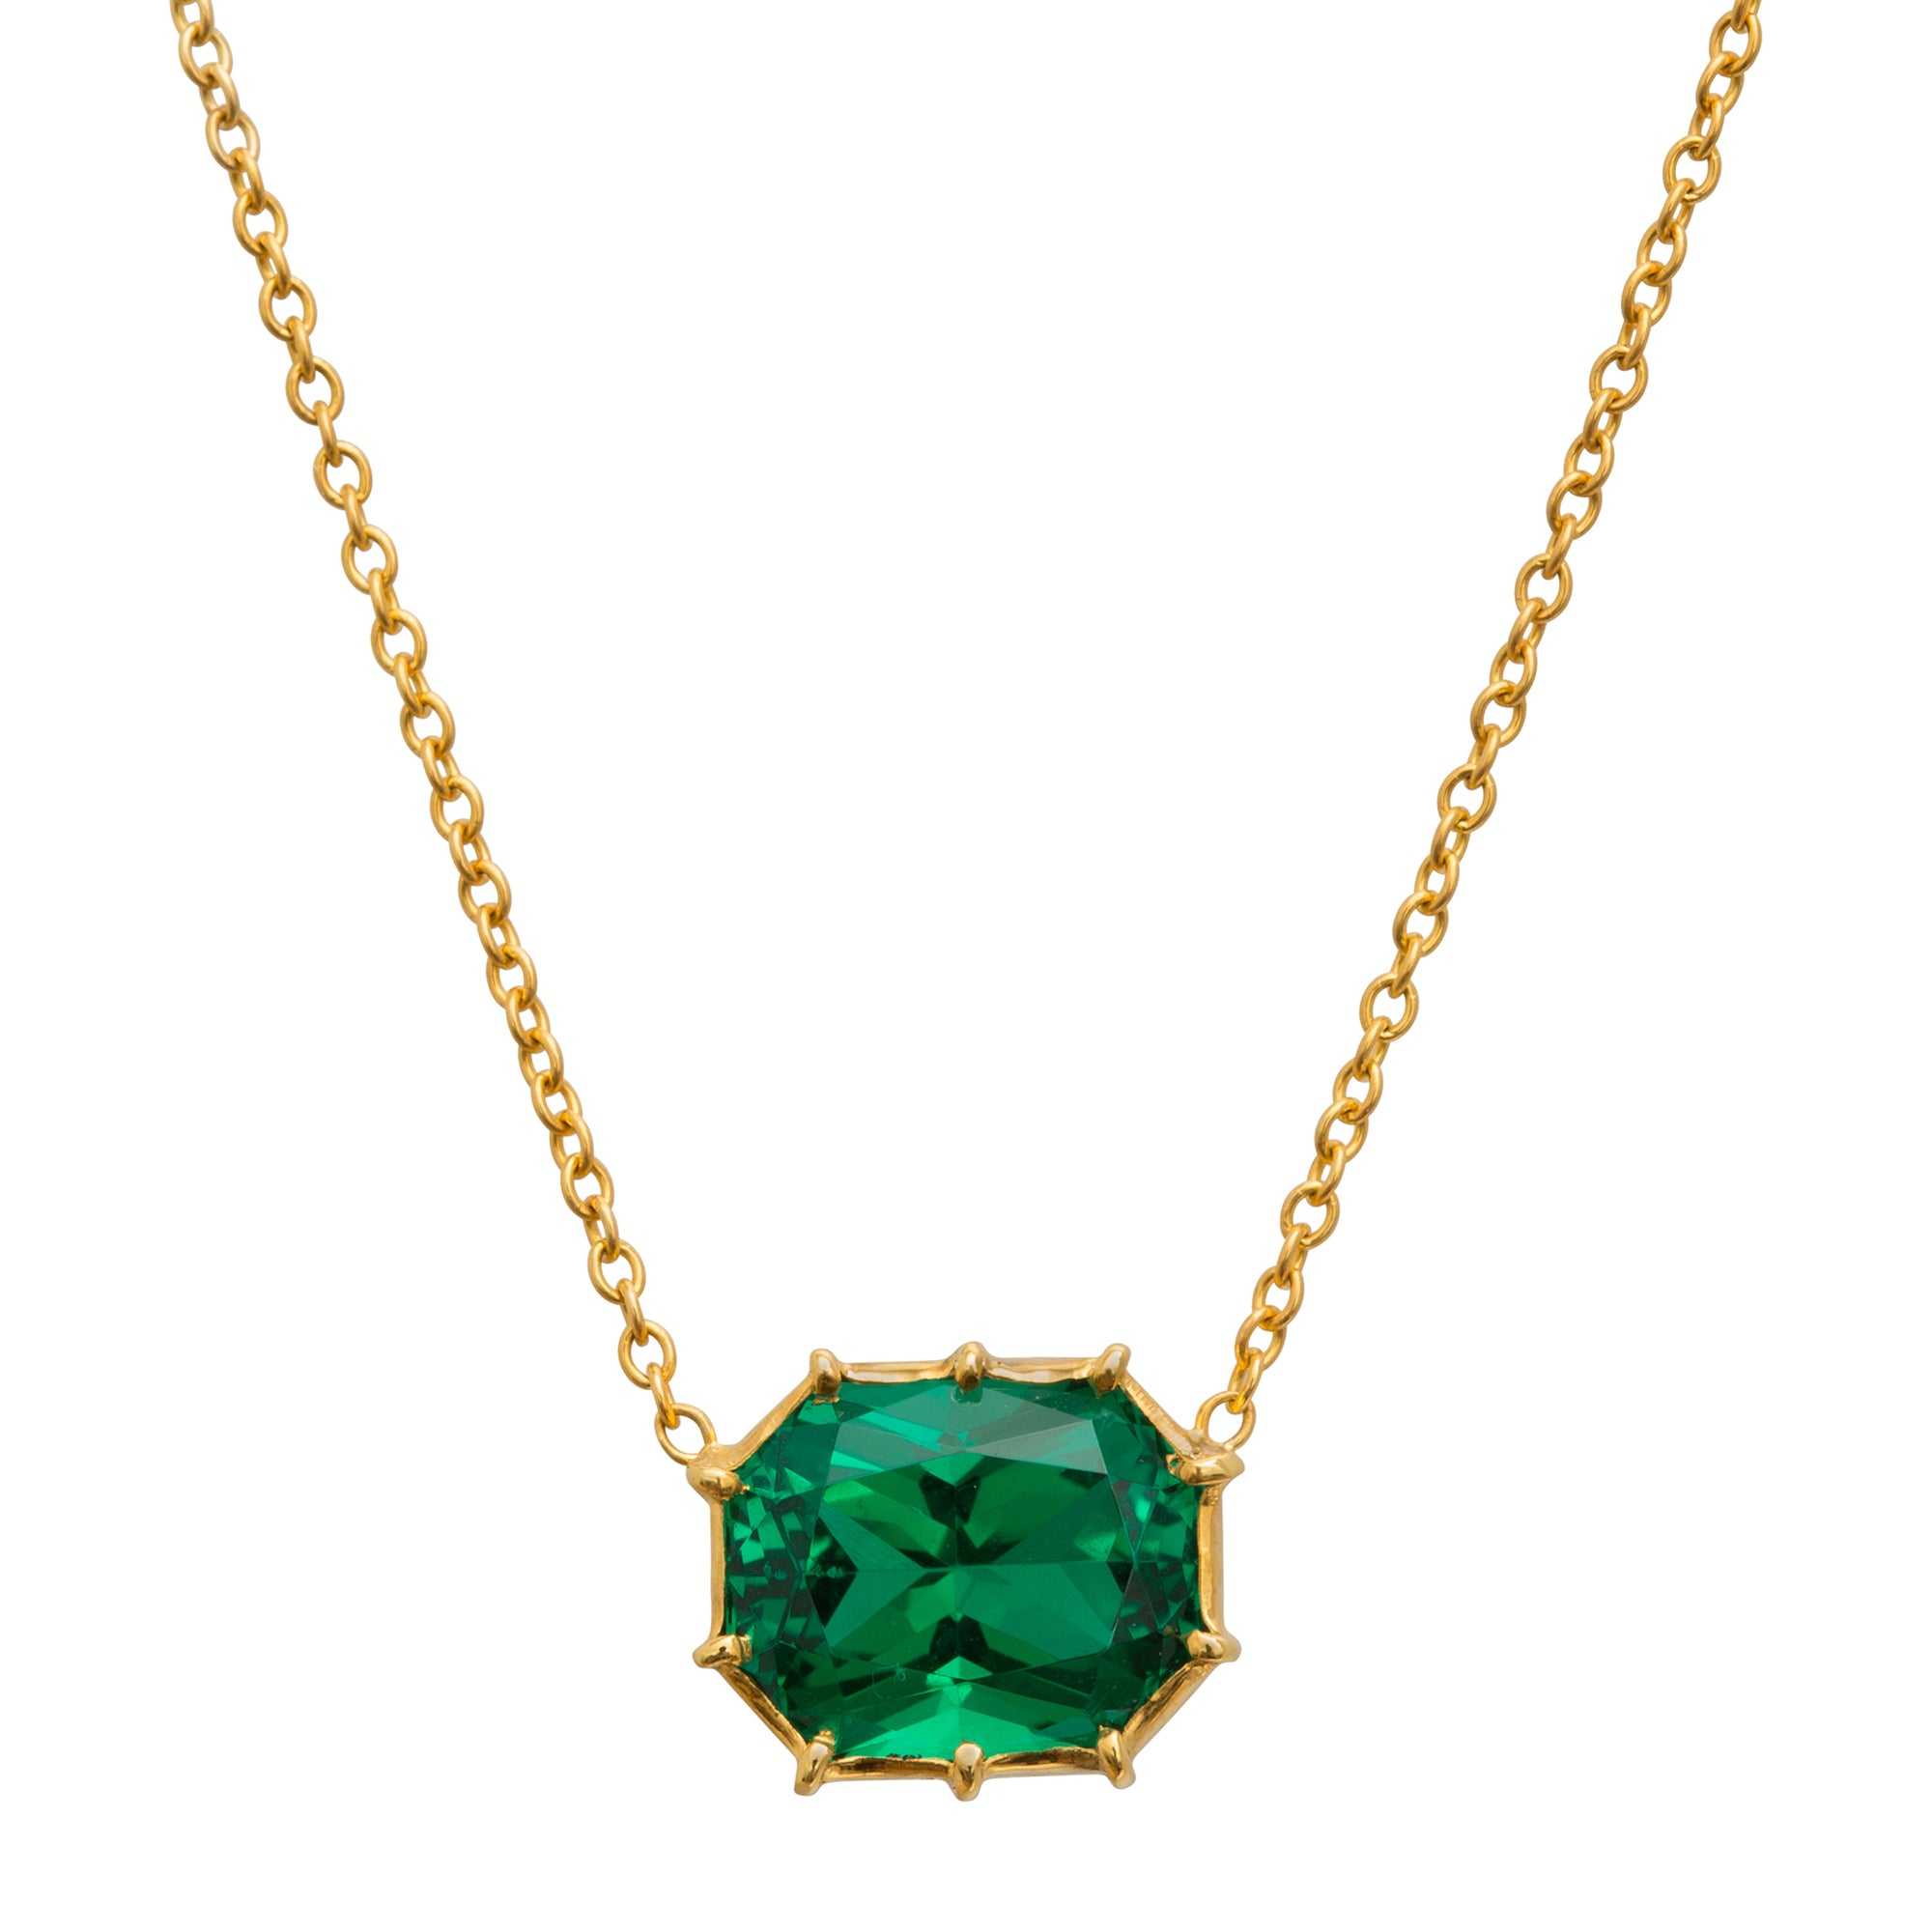 Synthetic Emerald Necklace by Renee Lewis for Broken English Jewelry